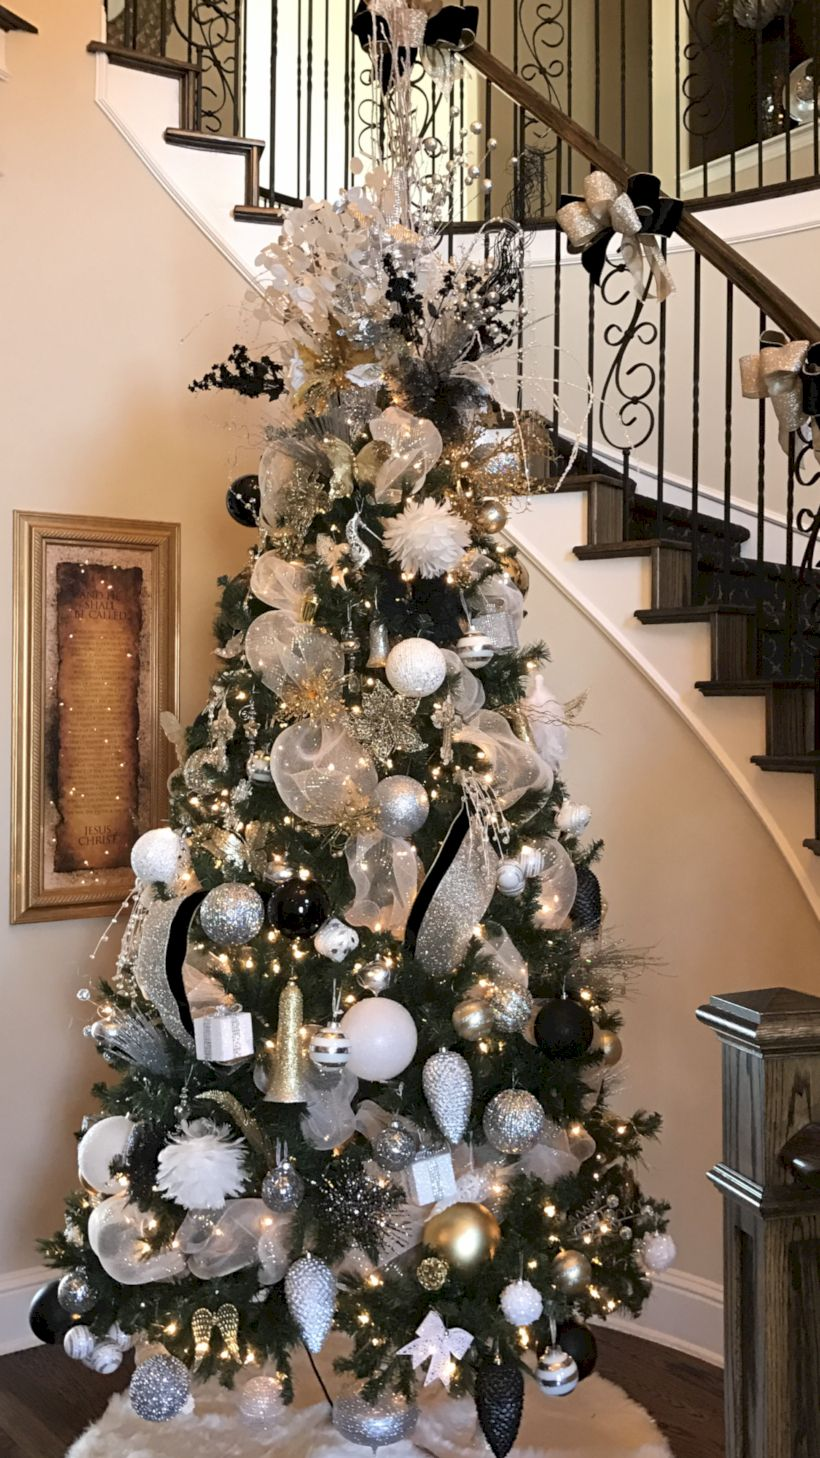 45 Awesome Silver And White Christmas Tree Decorating Ideas Matchness Com Black Christmas Decorations White Christmas Tree Decorations Gold Christmas Decorations